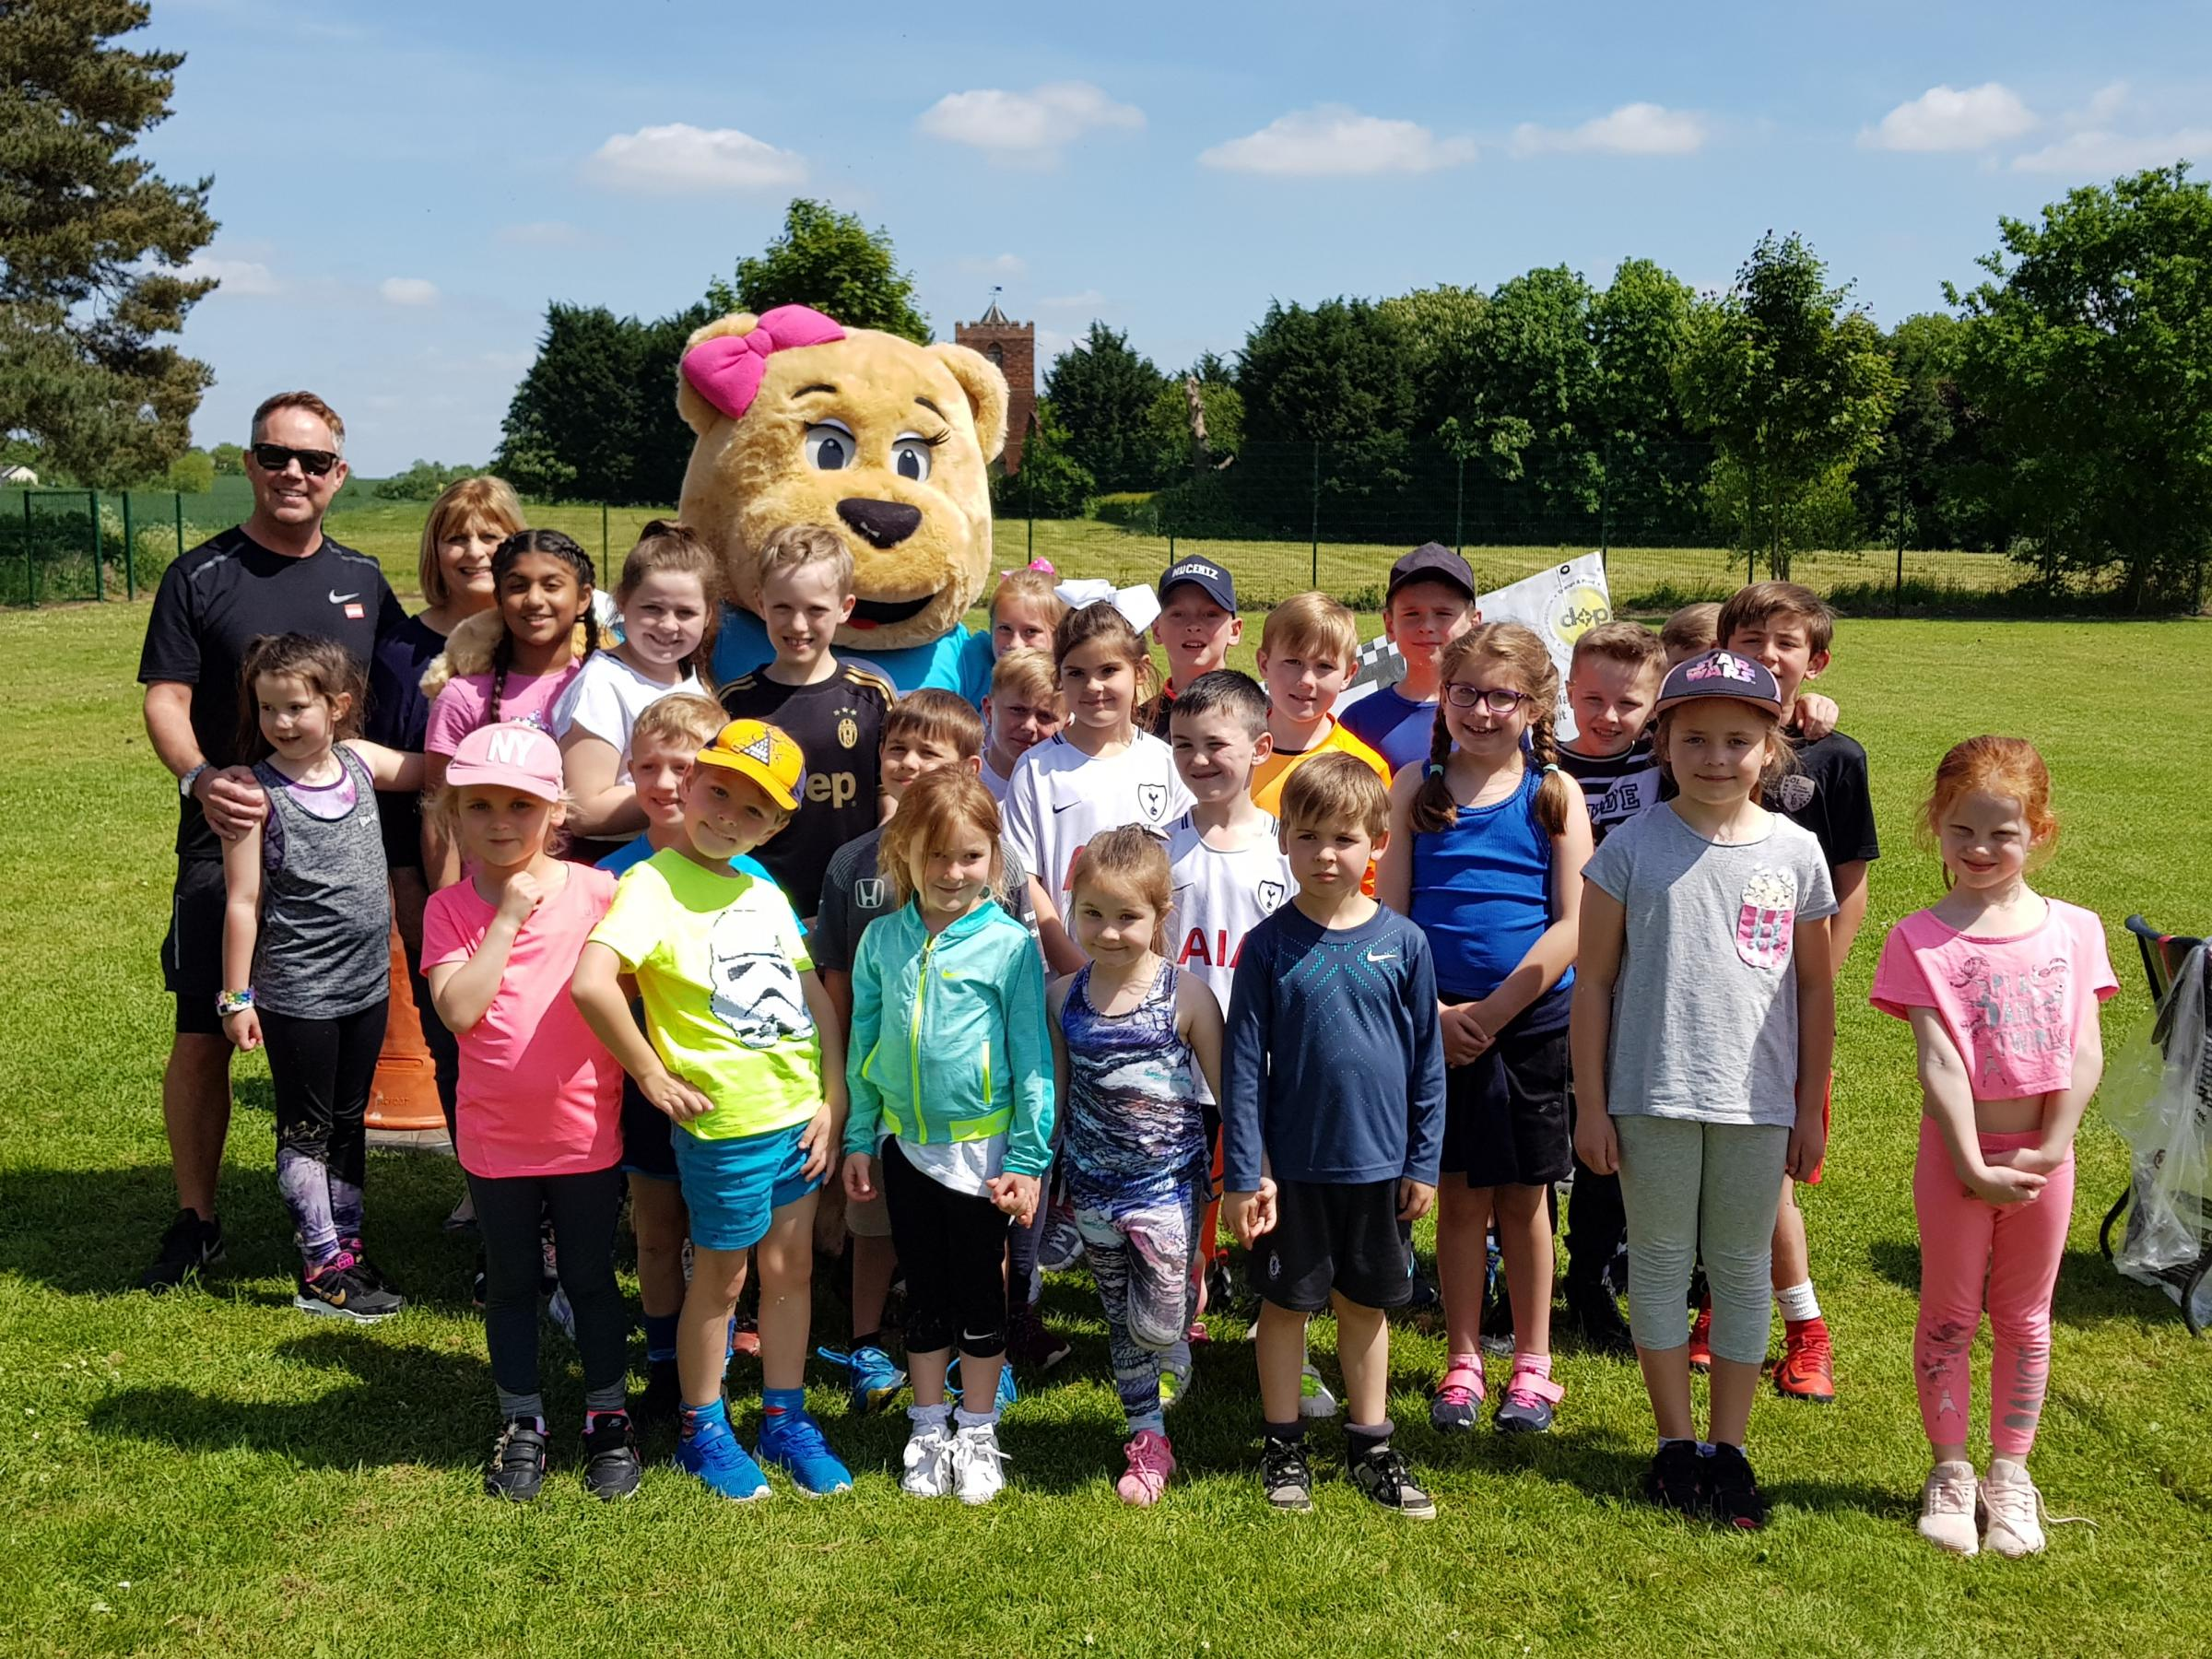 Clare Bear poses with Moreton pupils